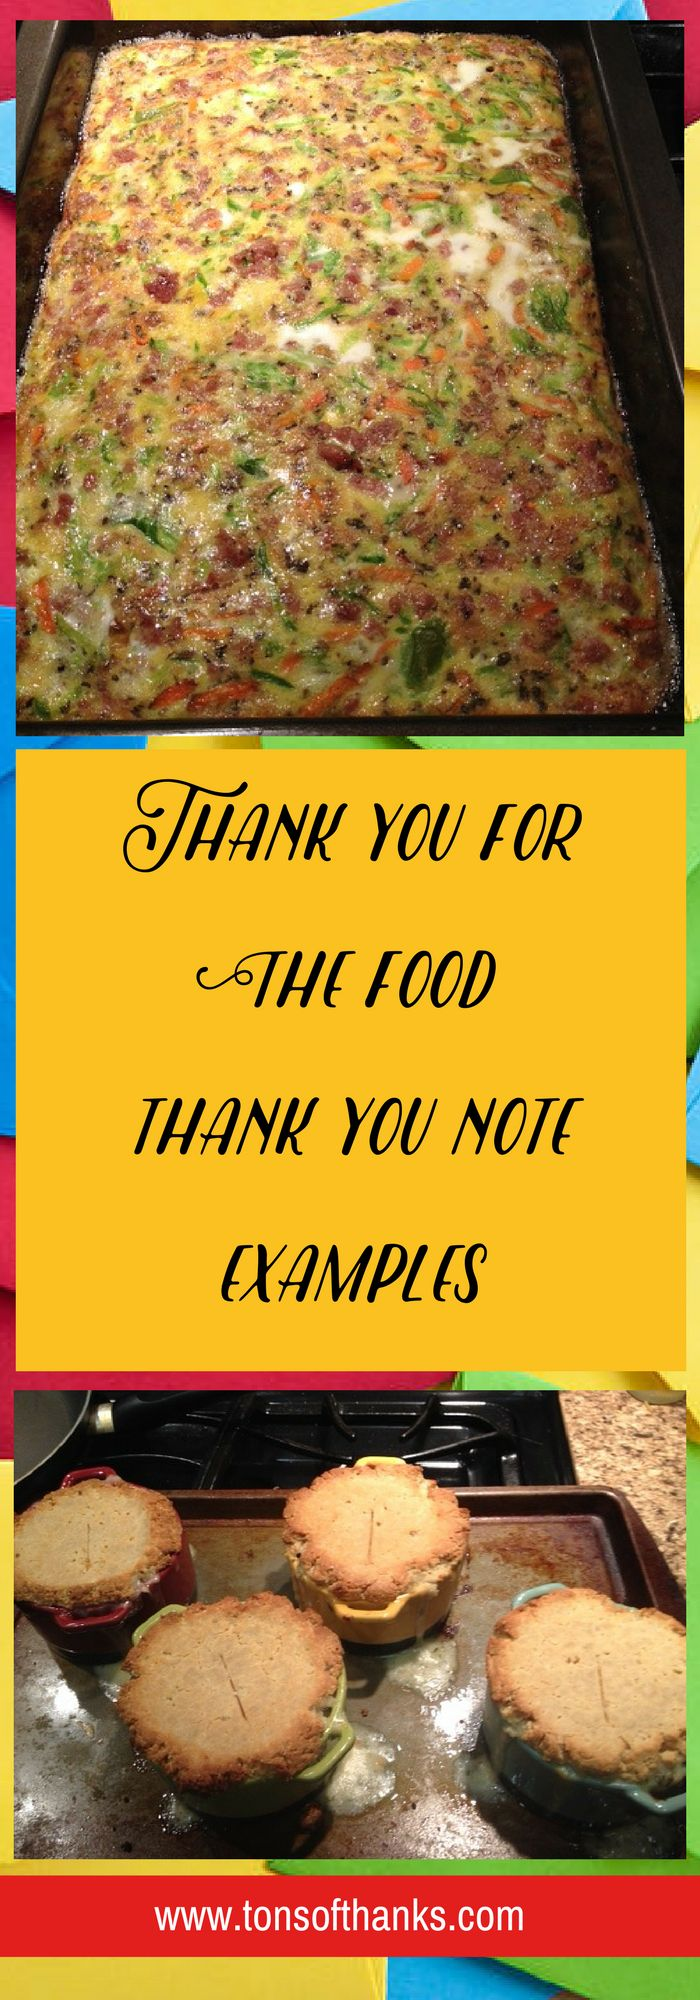 wedding shower thank you note for gift card%0A Thank you for the food thank you note examples  Take a few minutes to thank